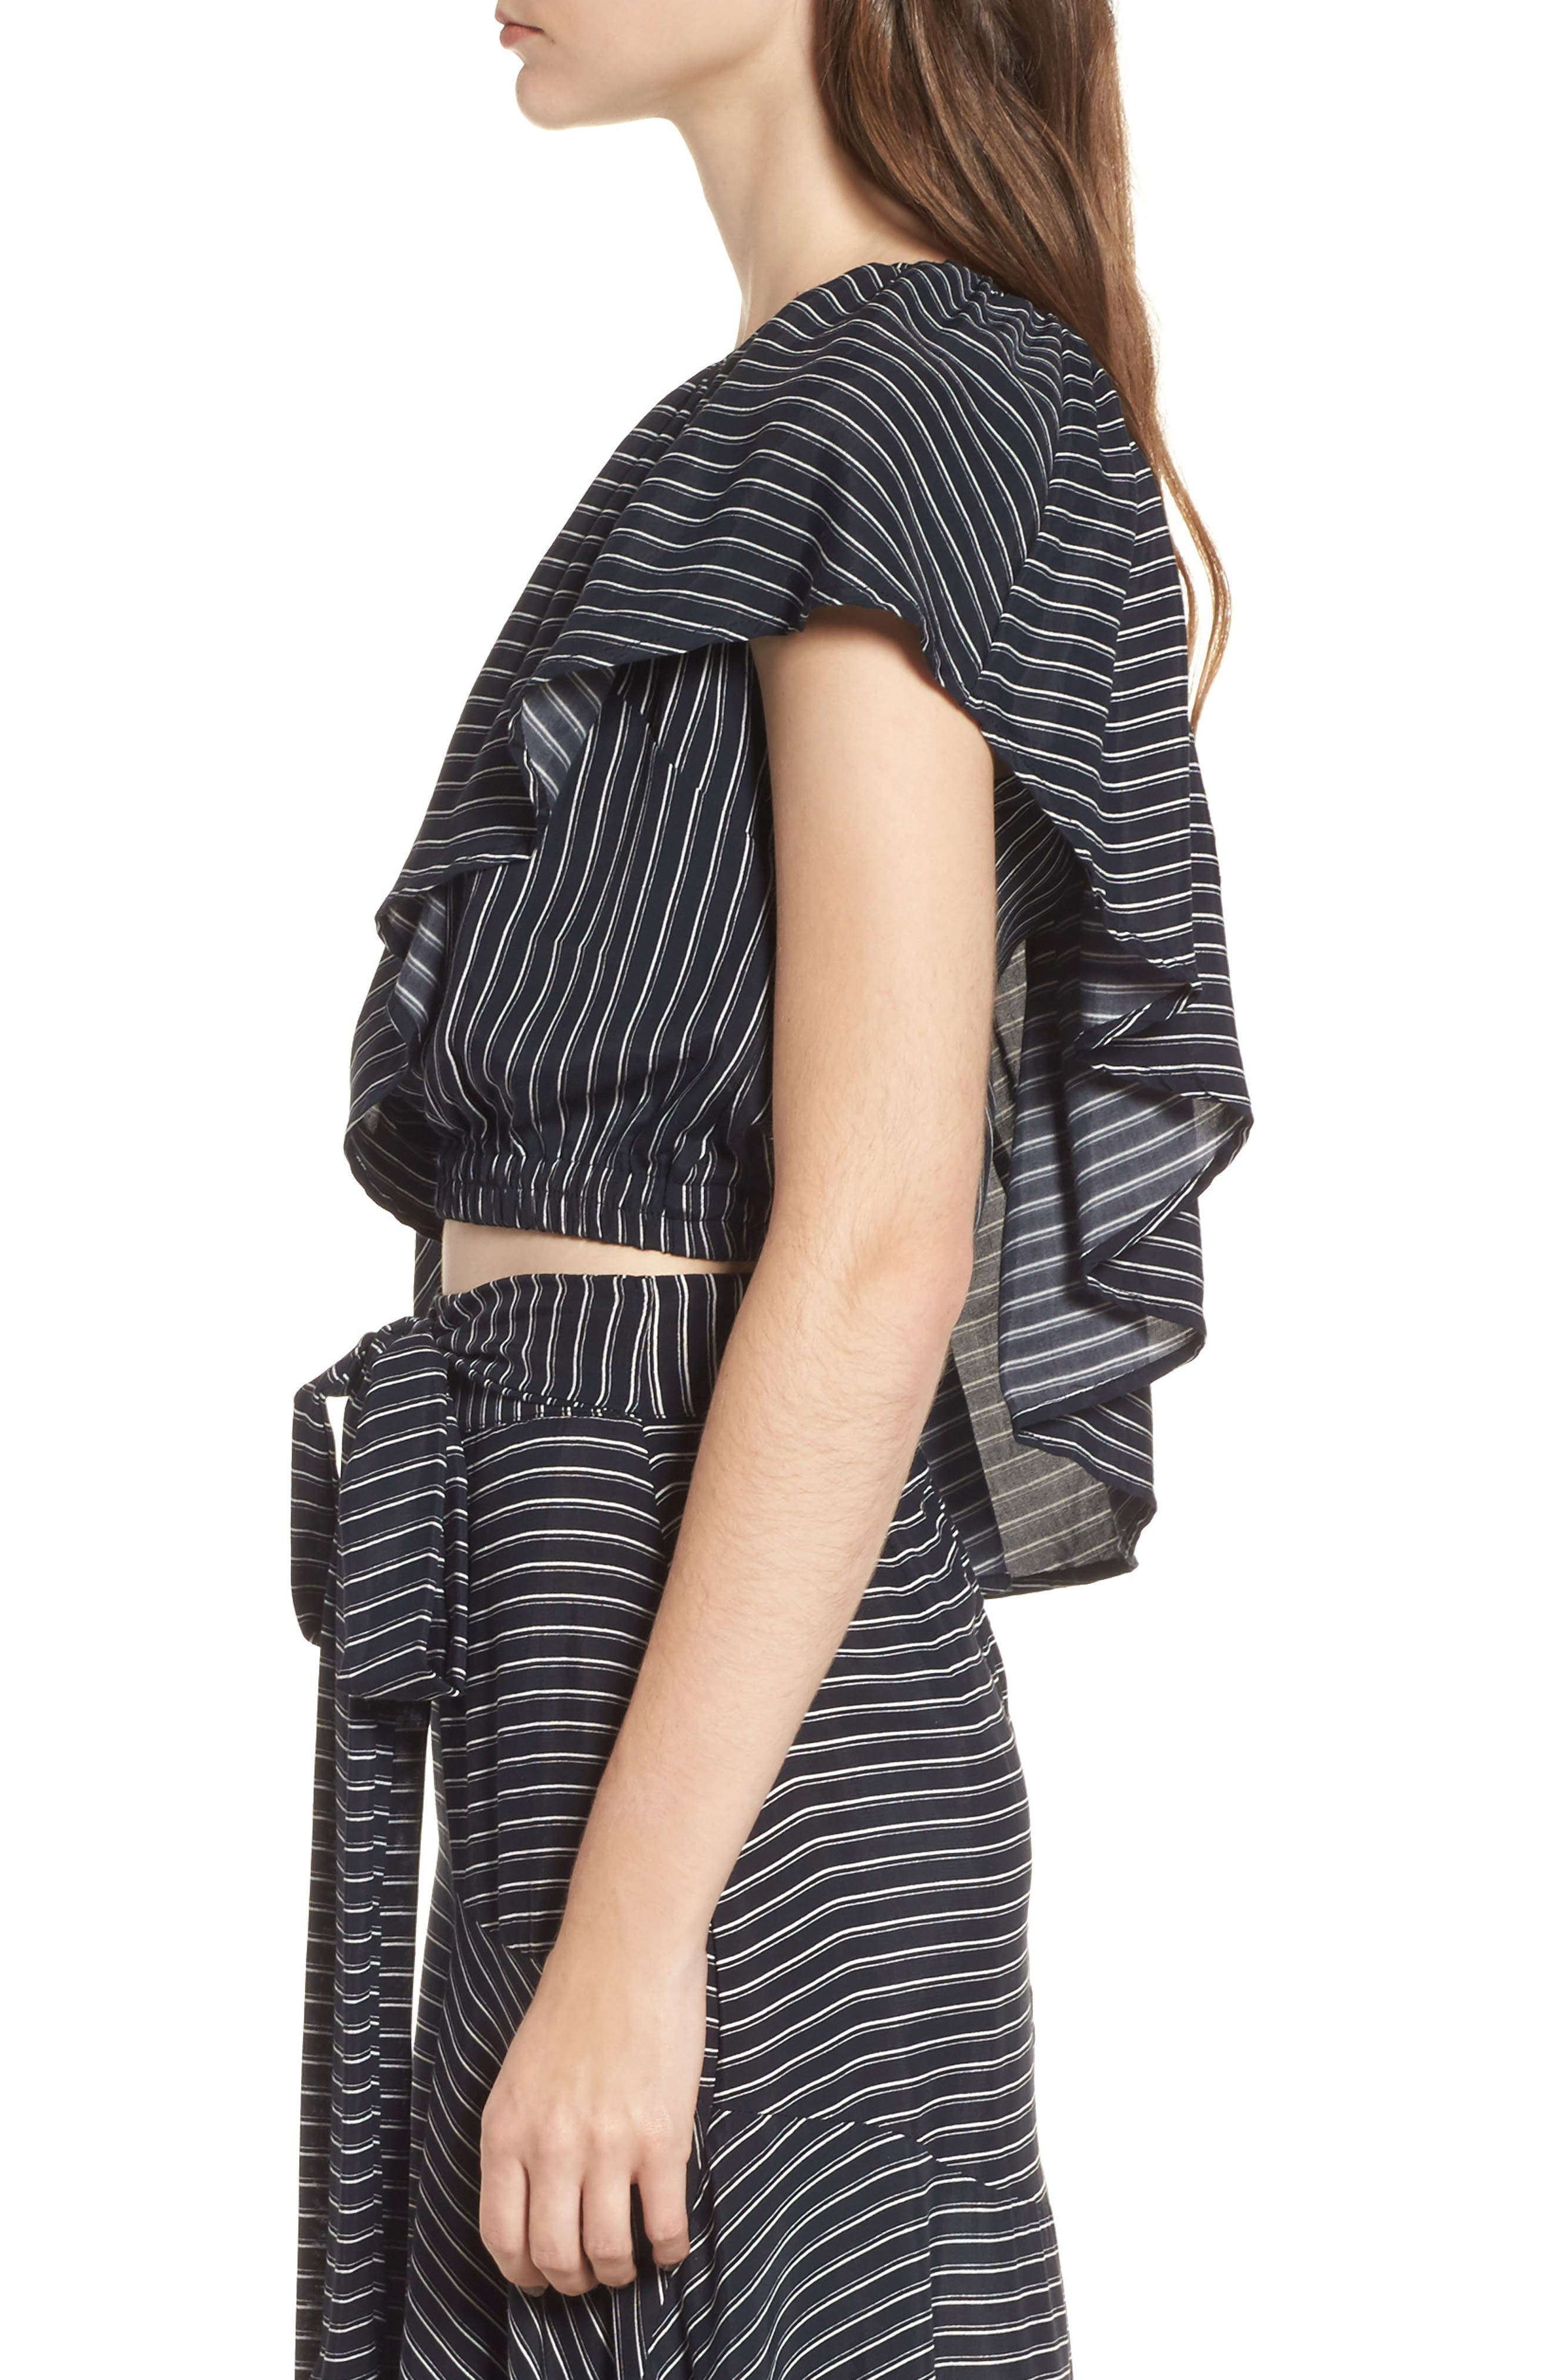 San Andres One Shoulder Ruffle Top,                             Alternate thumbnail 4, color,                             San Cristobal Stripe Print